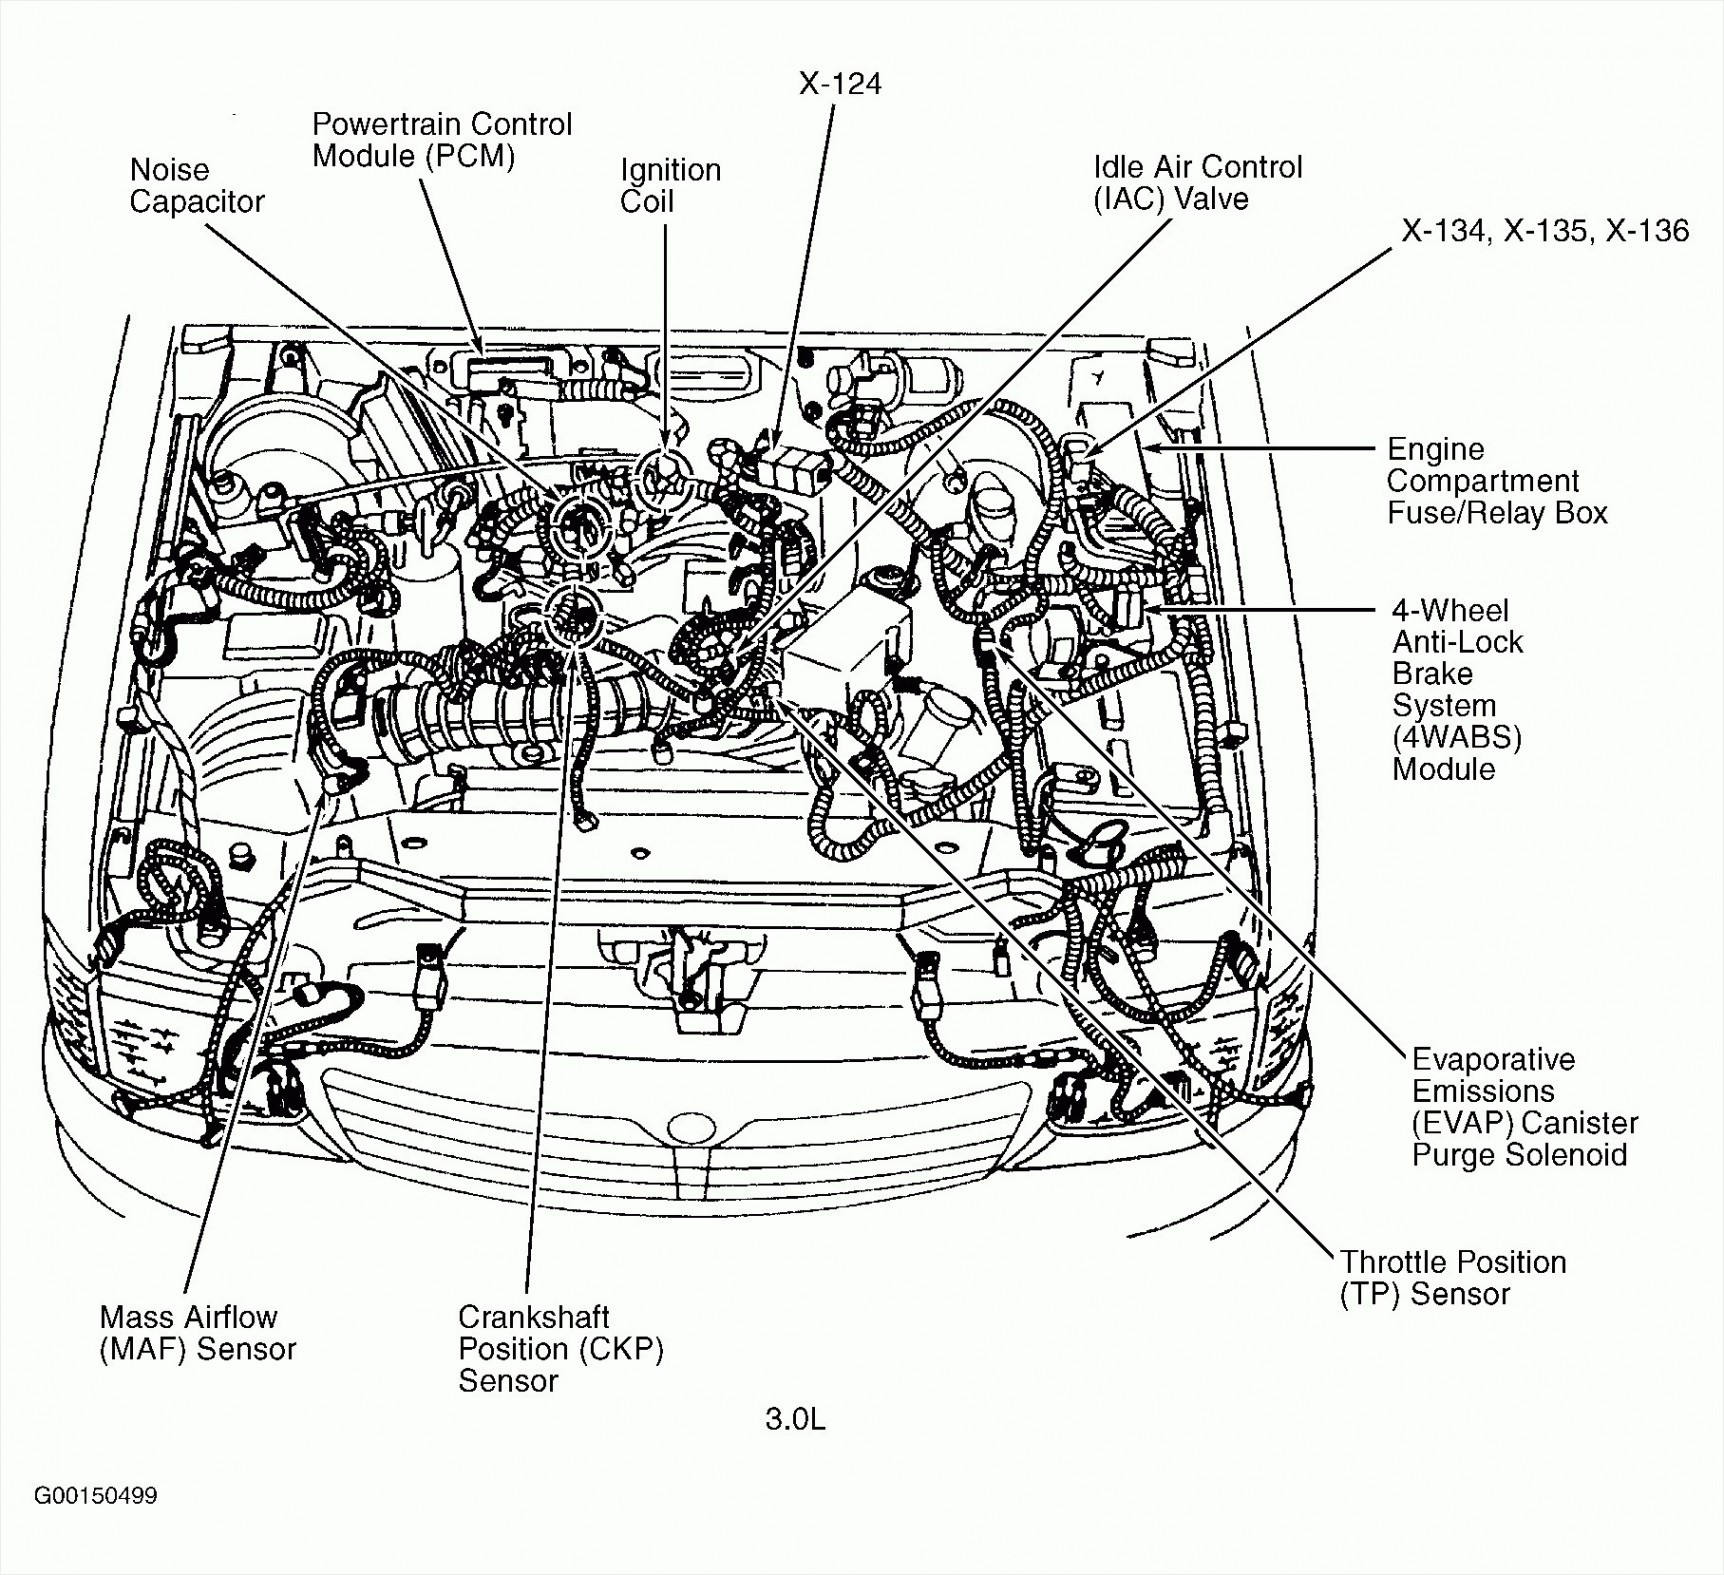 2005 Ford Focus Engine Compartment Diagram - Wiring Diagram Text fat-writer  - fat-writer.albergoristorantecanzo.it | 2005 Engine Diagram |  | fat-writer.albergoristorantecanzo.it